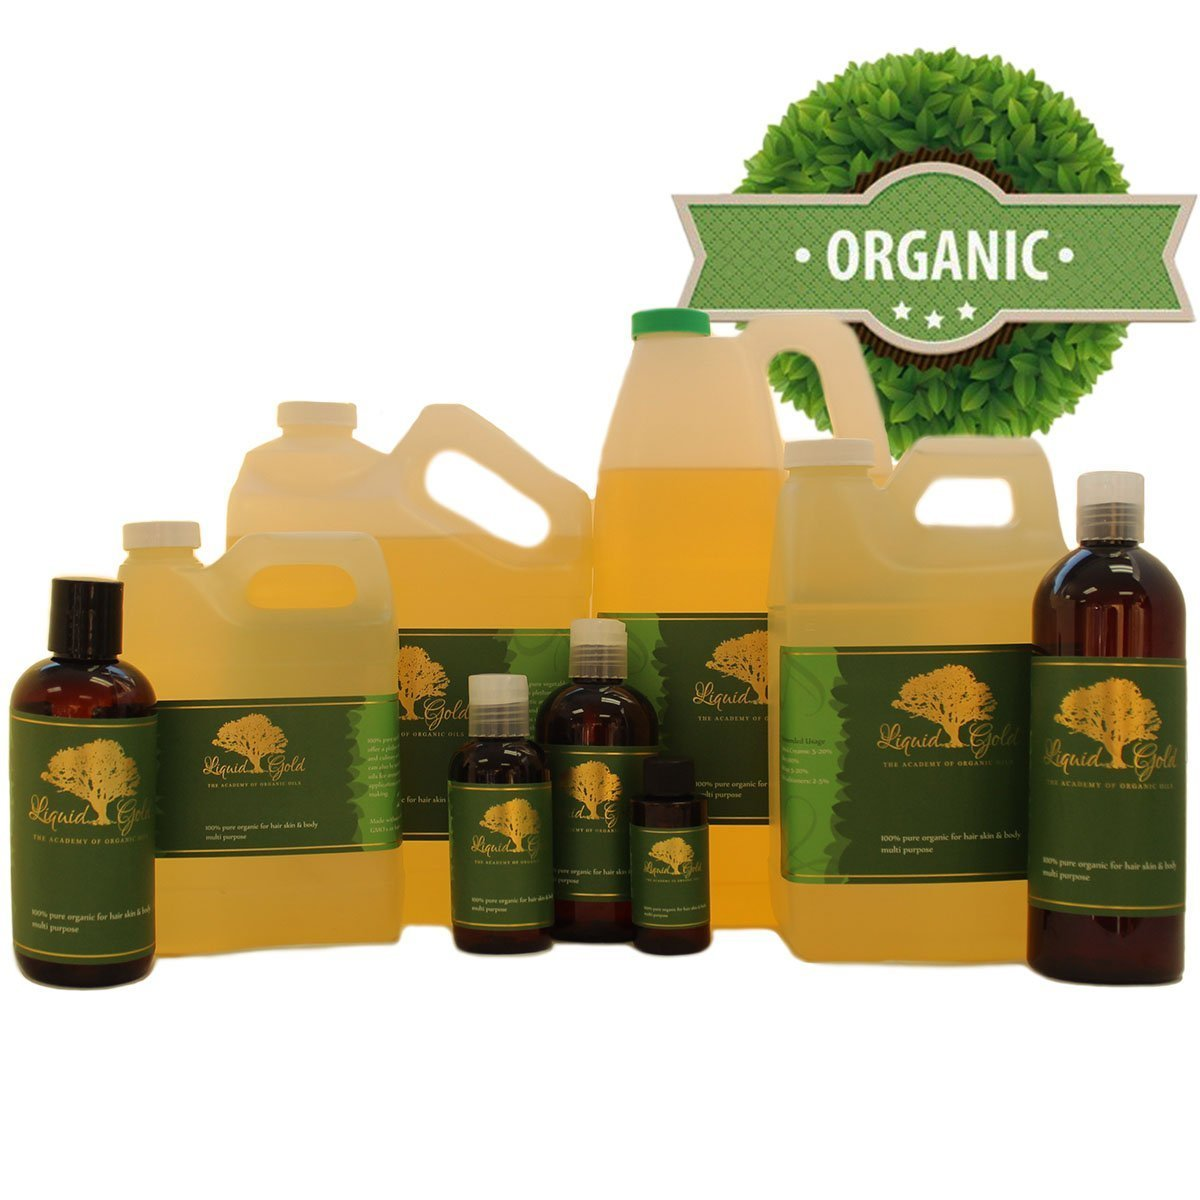 1 Gallon of Premium REFINED Wheat Germ Oil Skin Health Care Antioxidant Anti-Aging Energy Boost 71NHLsivaQL._SL1200_